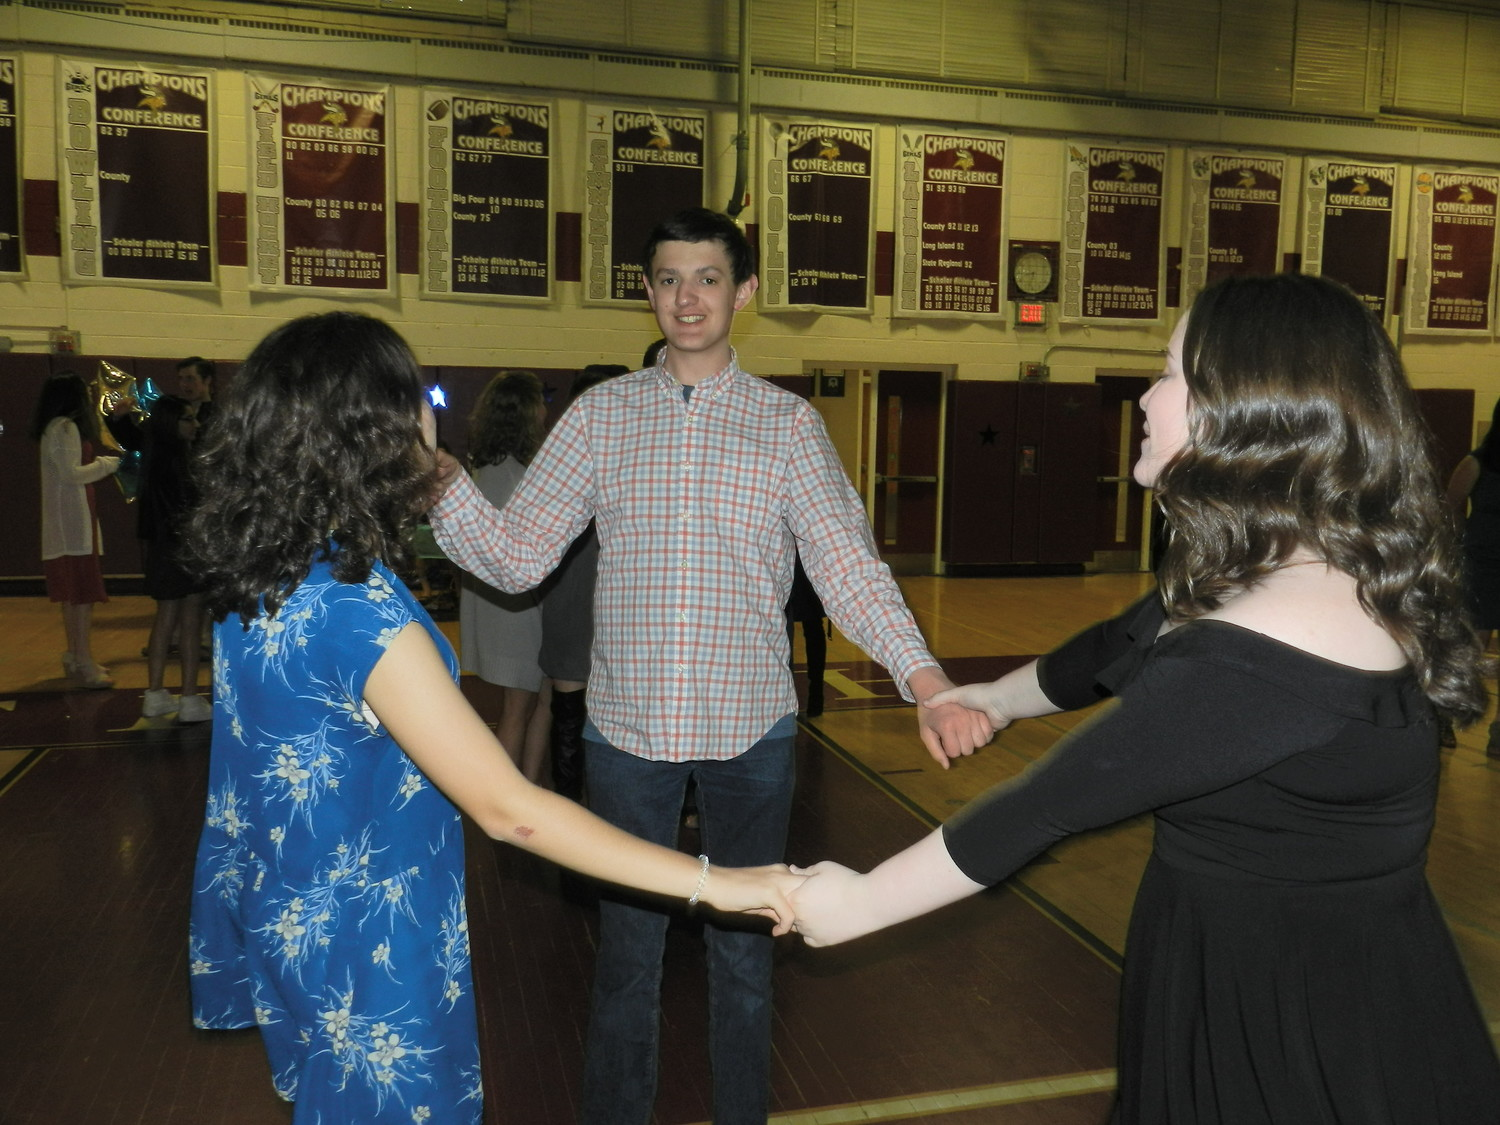 Students Emily Bilosi, Dan Purcell and Meagan Kearney cut a rug on the dance floor.